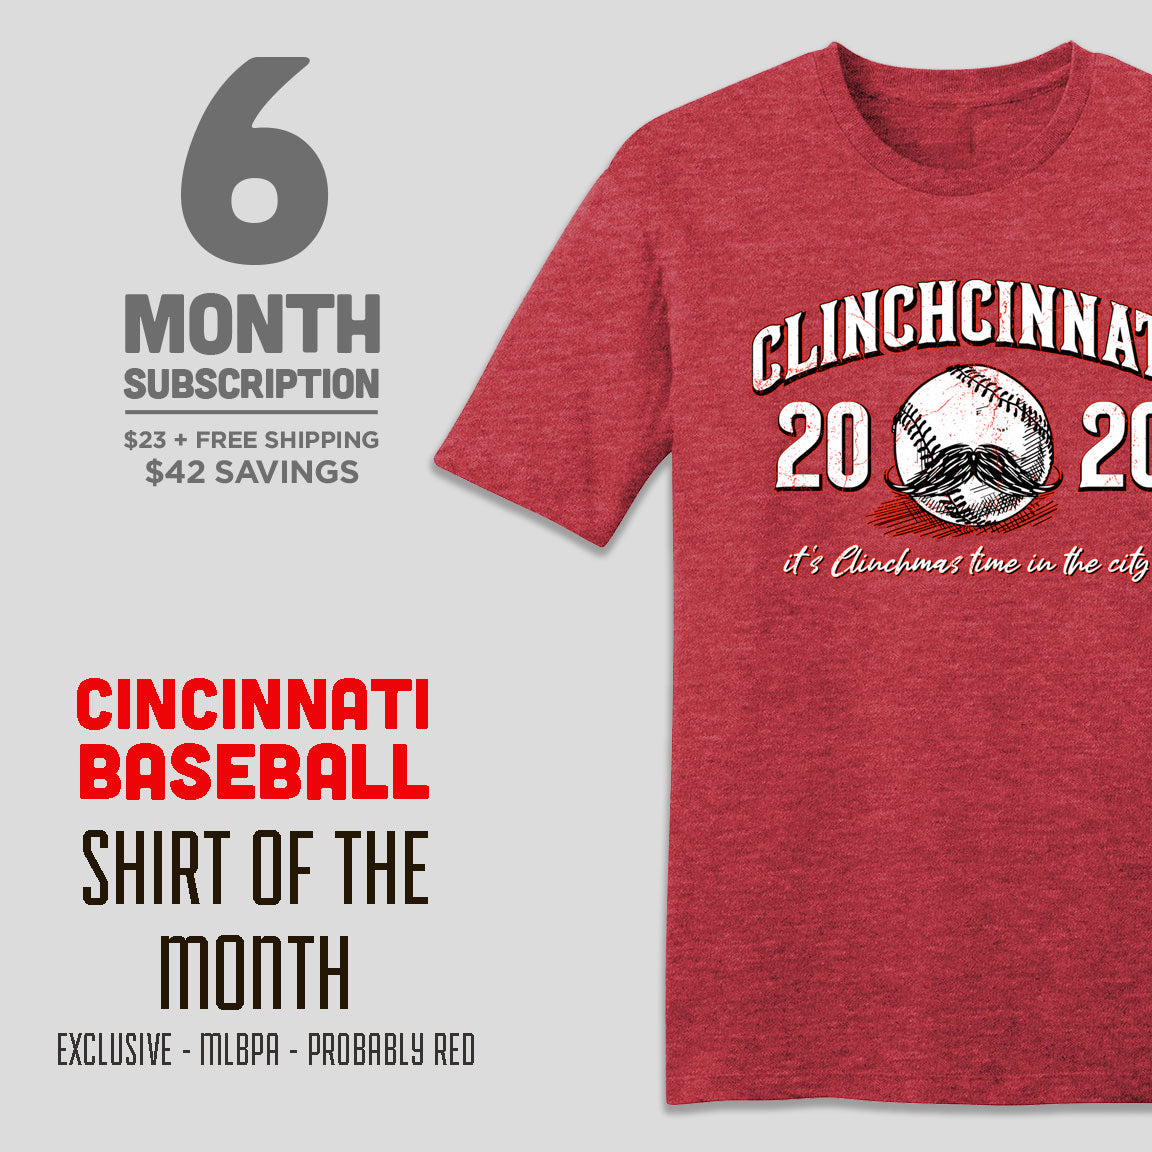 6-Month Cincinnati Baseball Shirt of the Month